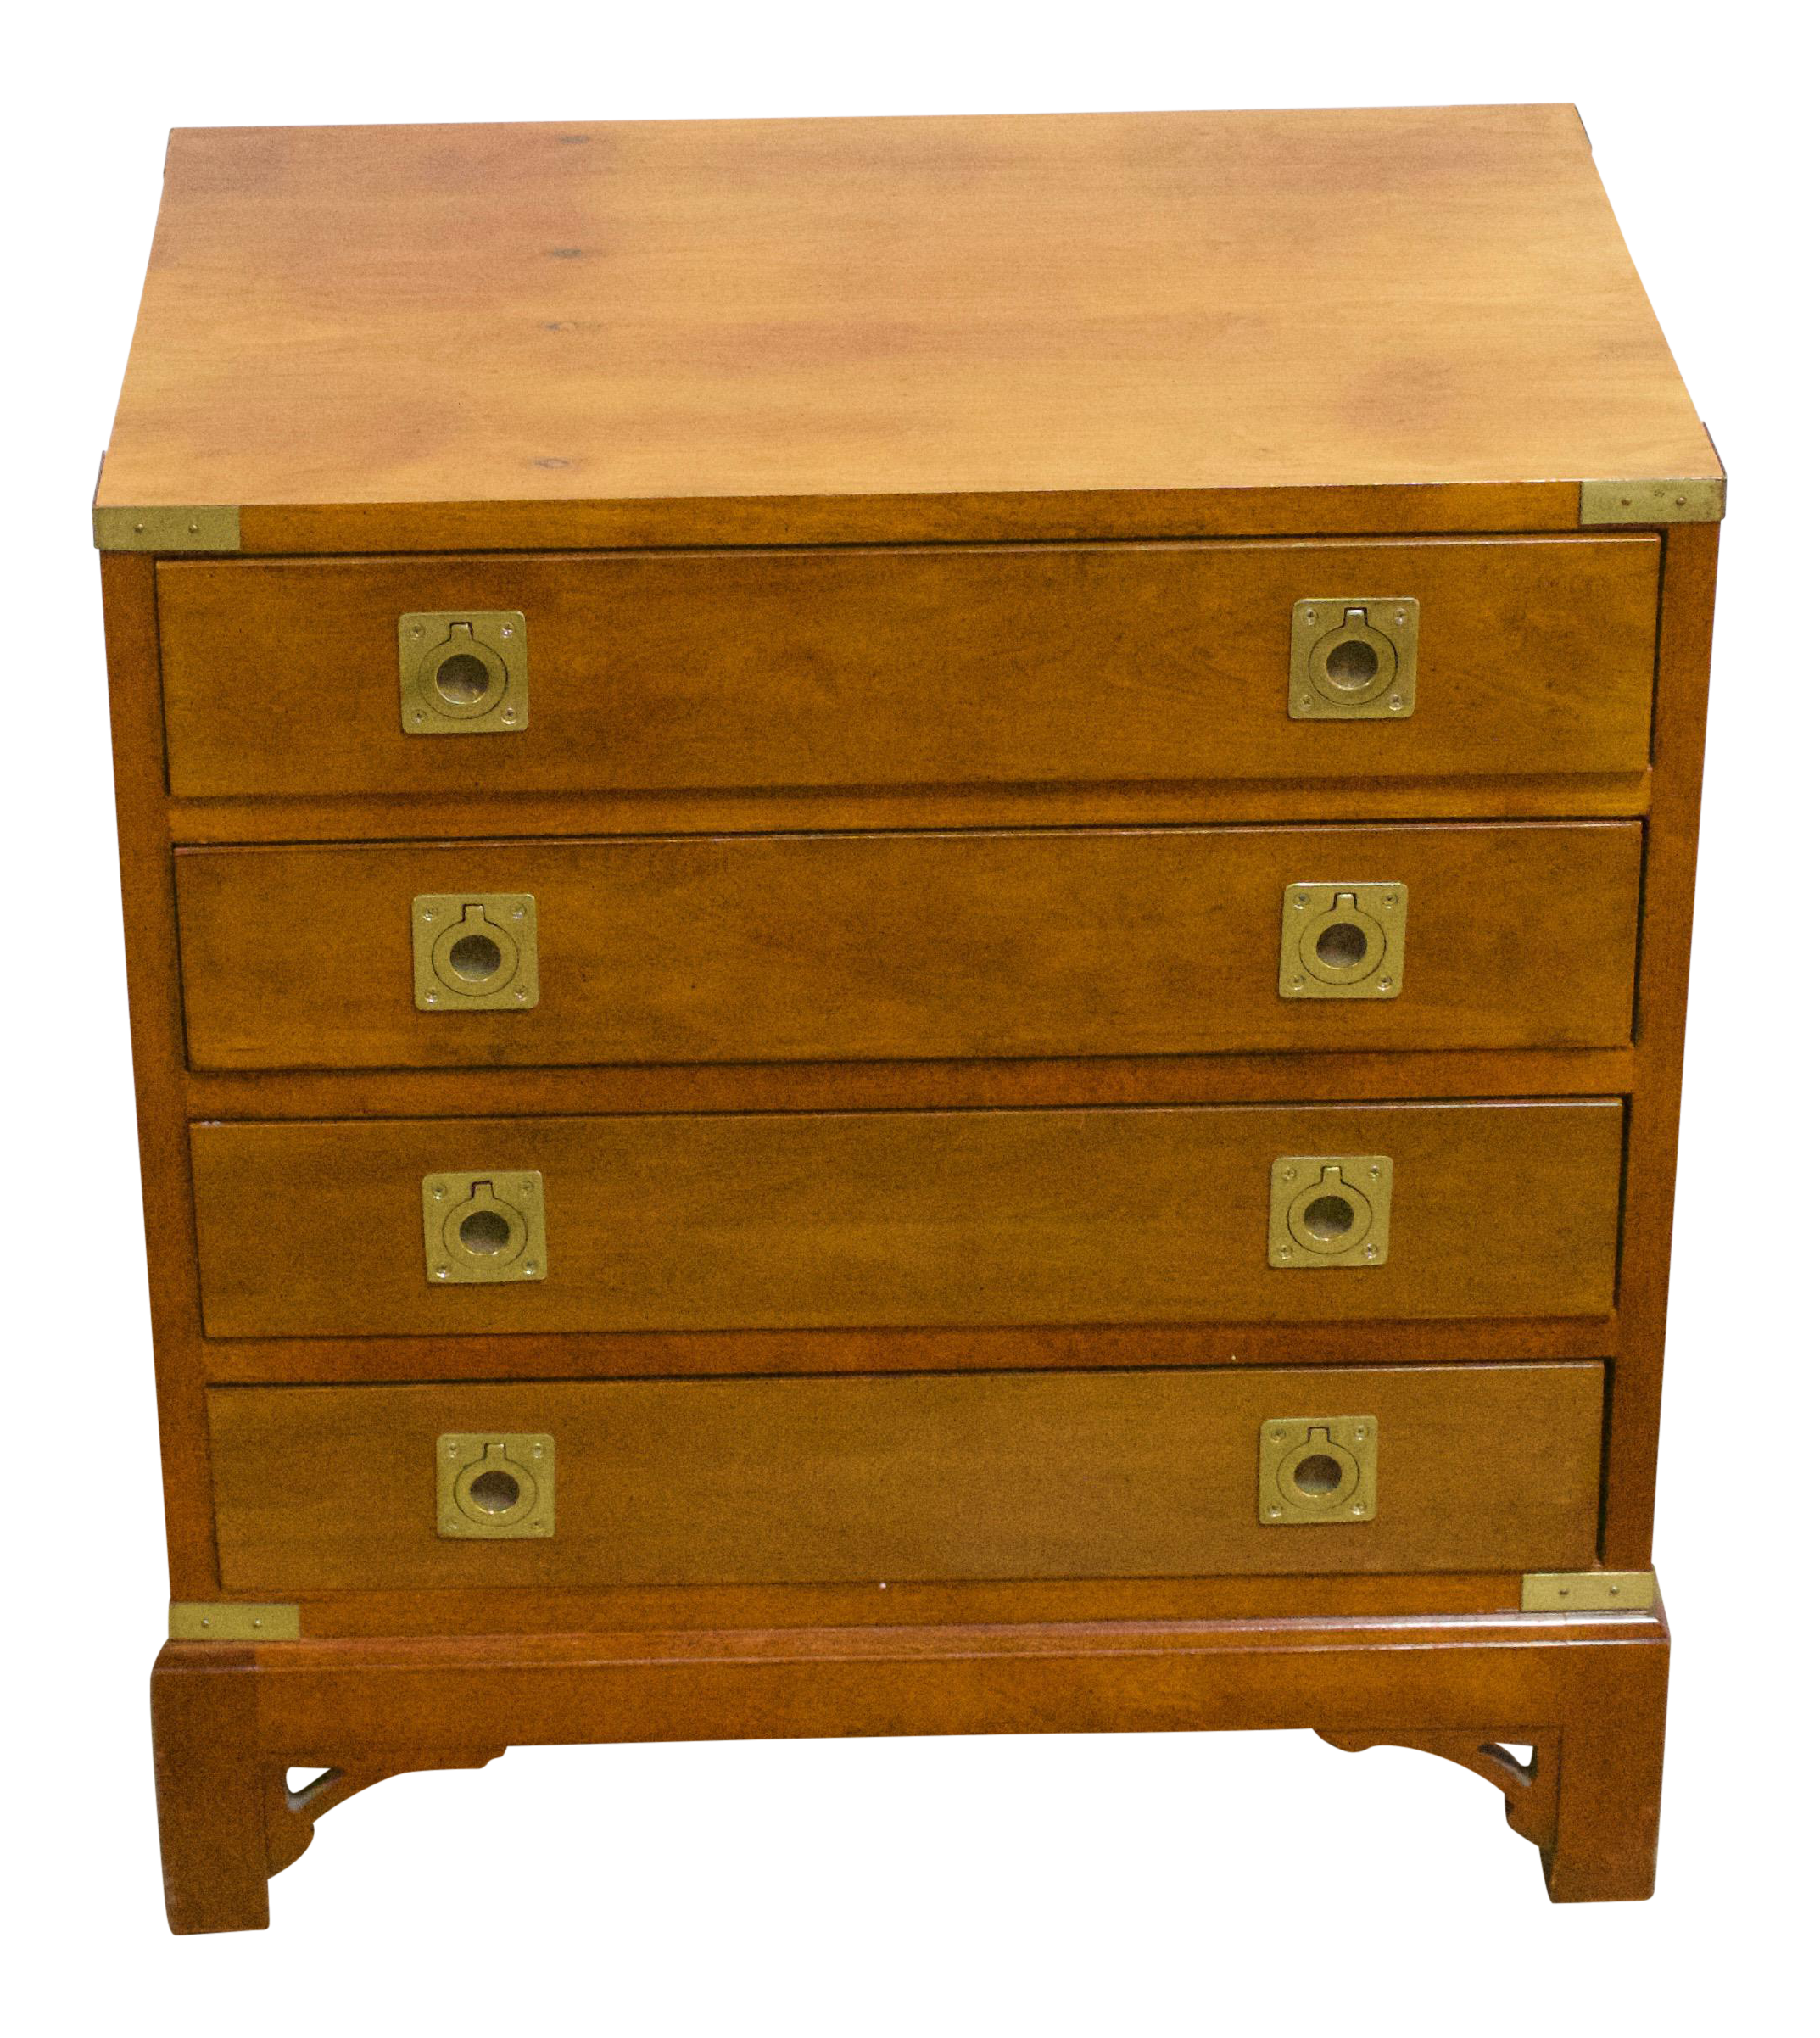 gently used ethan allen furniture off chairish vintage campaign chest brass pulls end tables craigslist paintable bedside ashley glass top coffee table leons thunder bay pipe